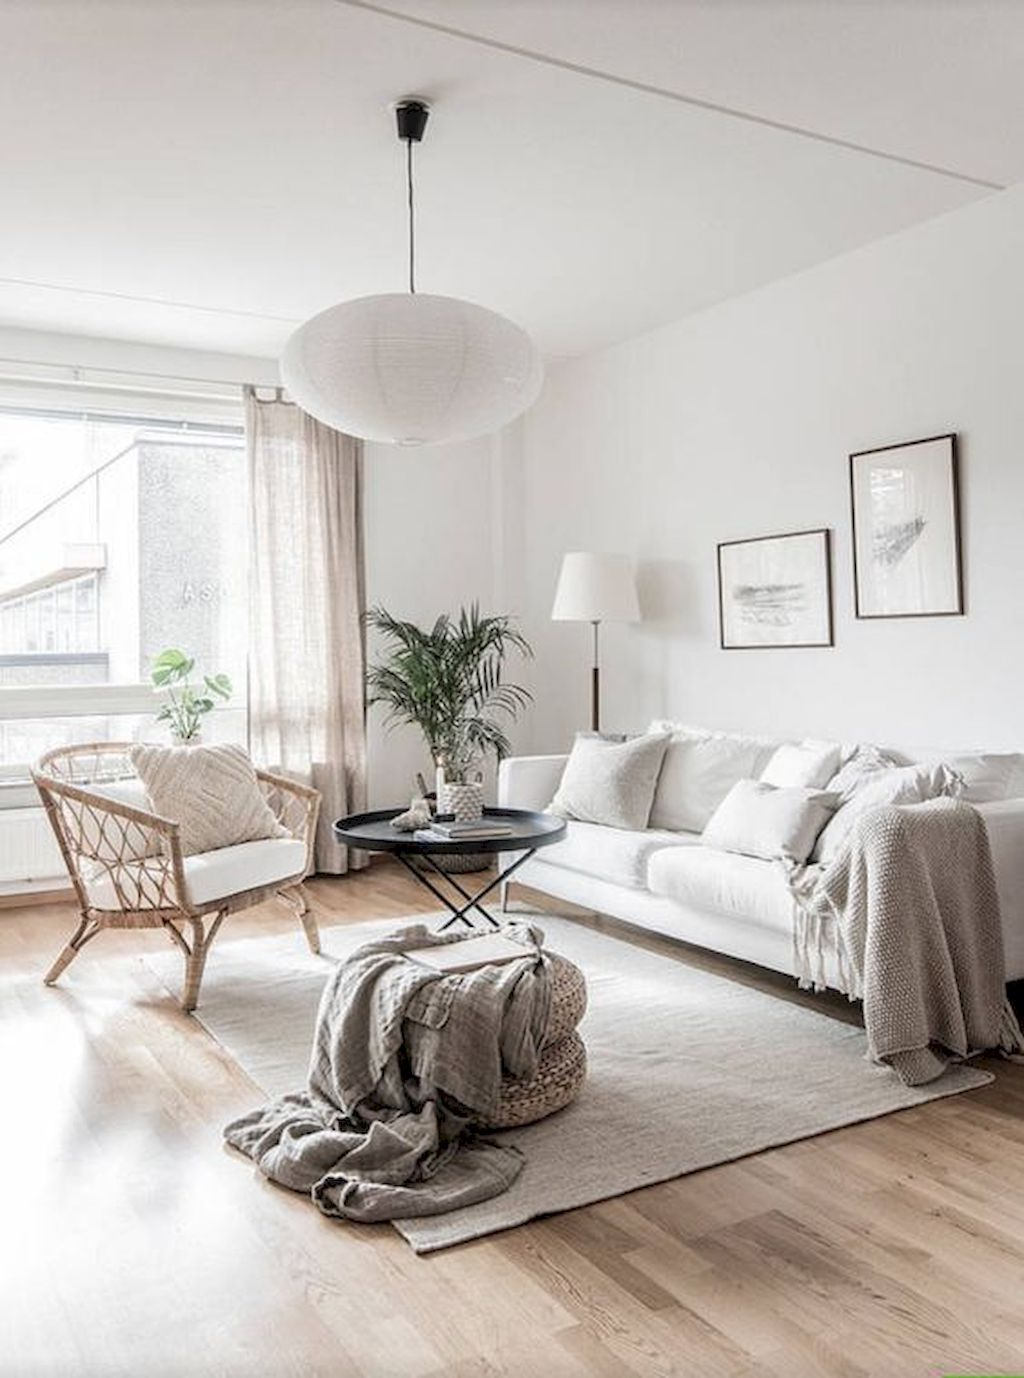 75 Simple and Stylish Scandinavian Living Room Decorating Ideas images